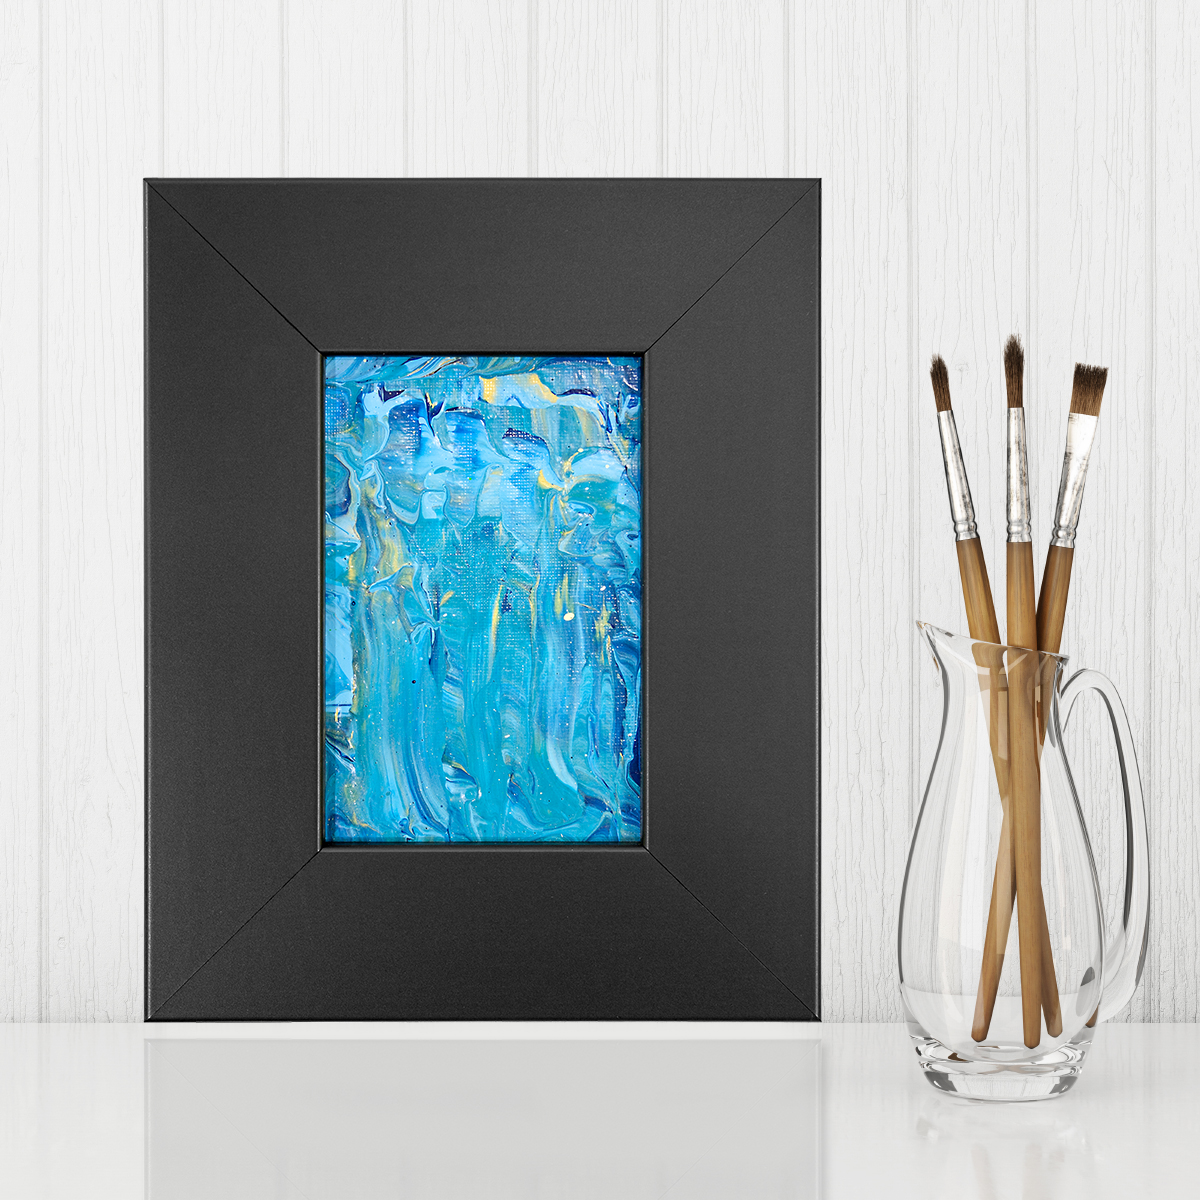 Cascade - Small Blue Framed Abstract Painting by Heather Miller Art